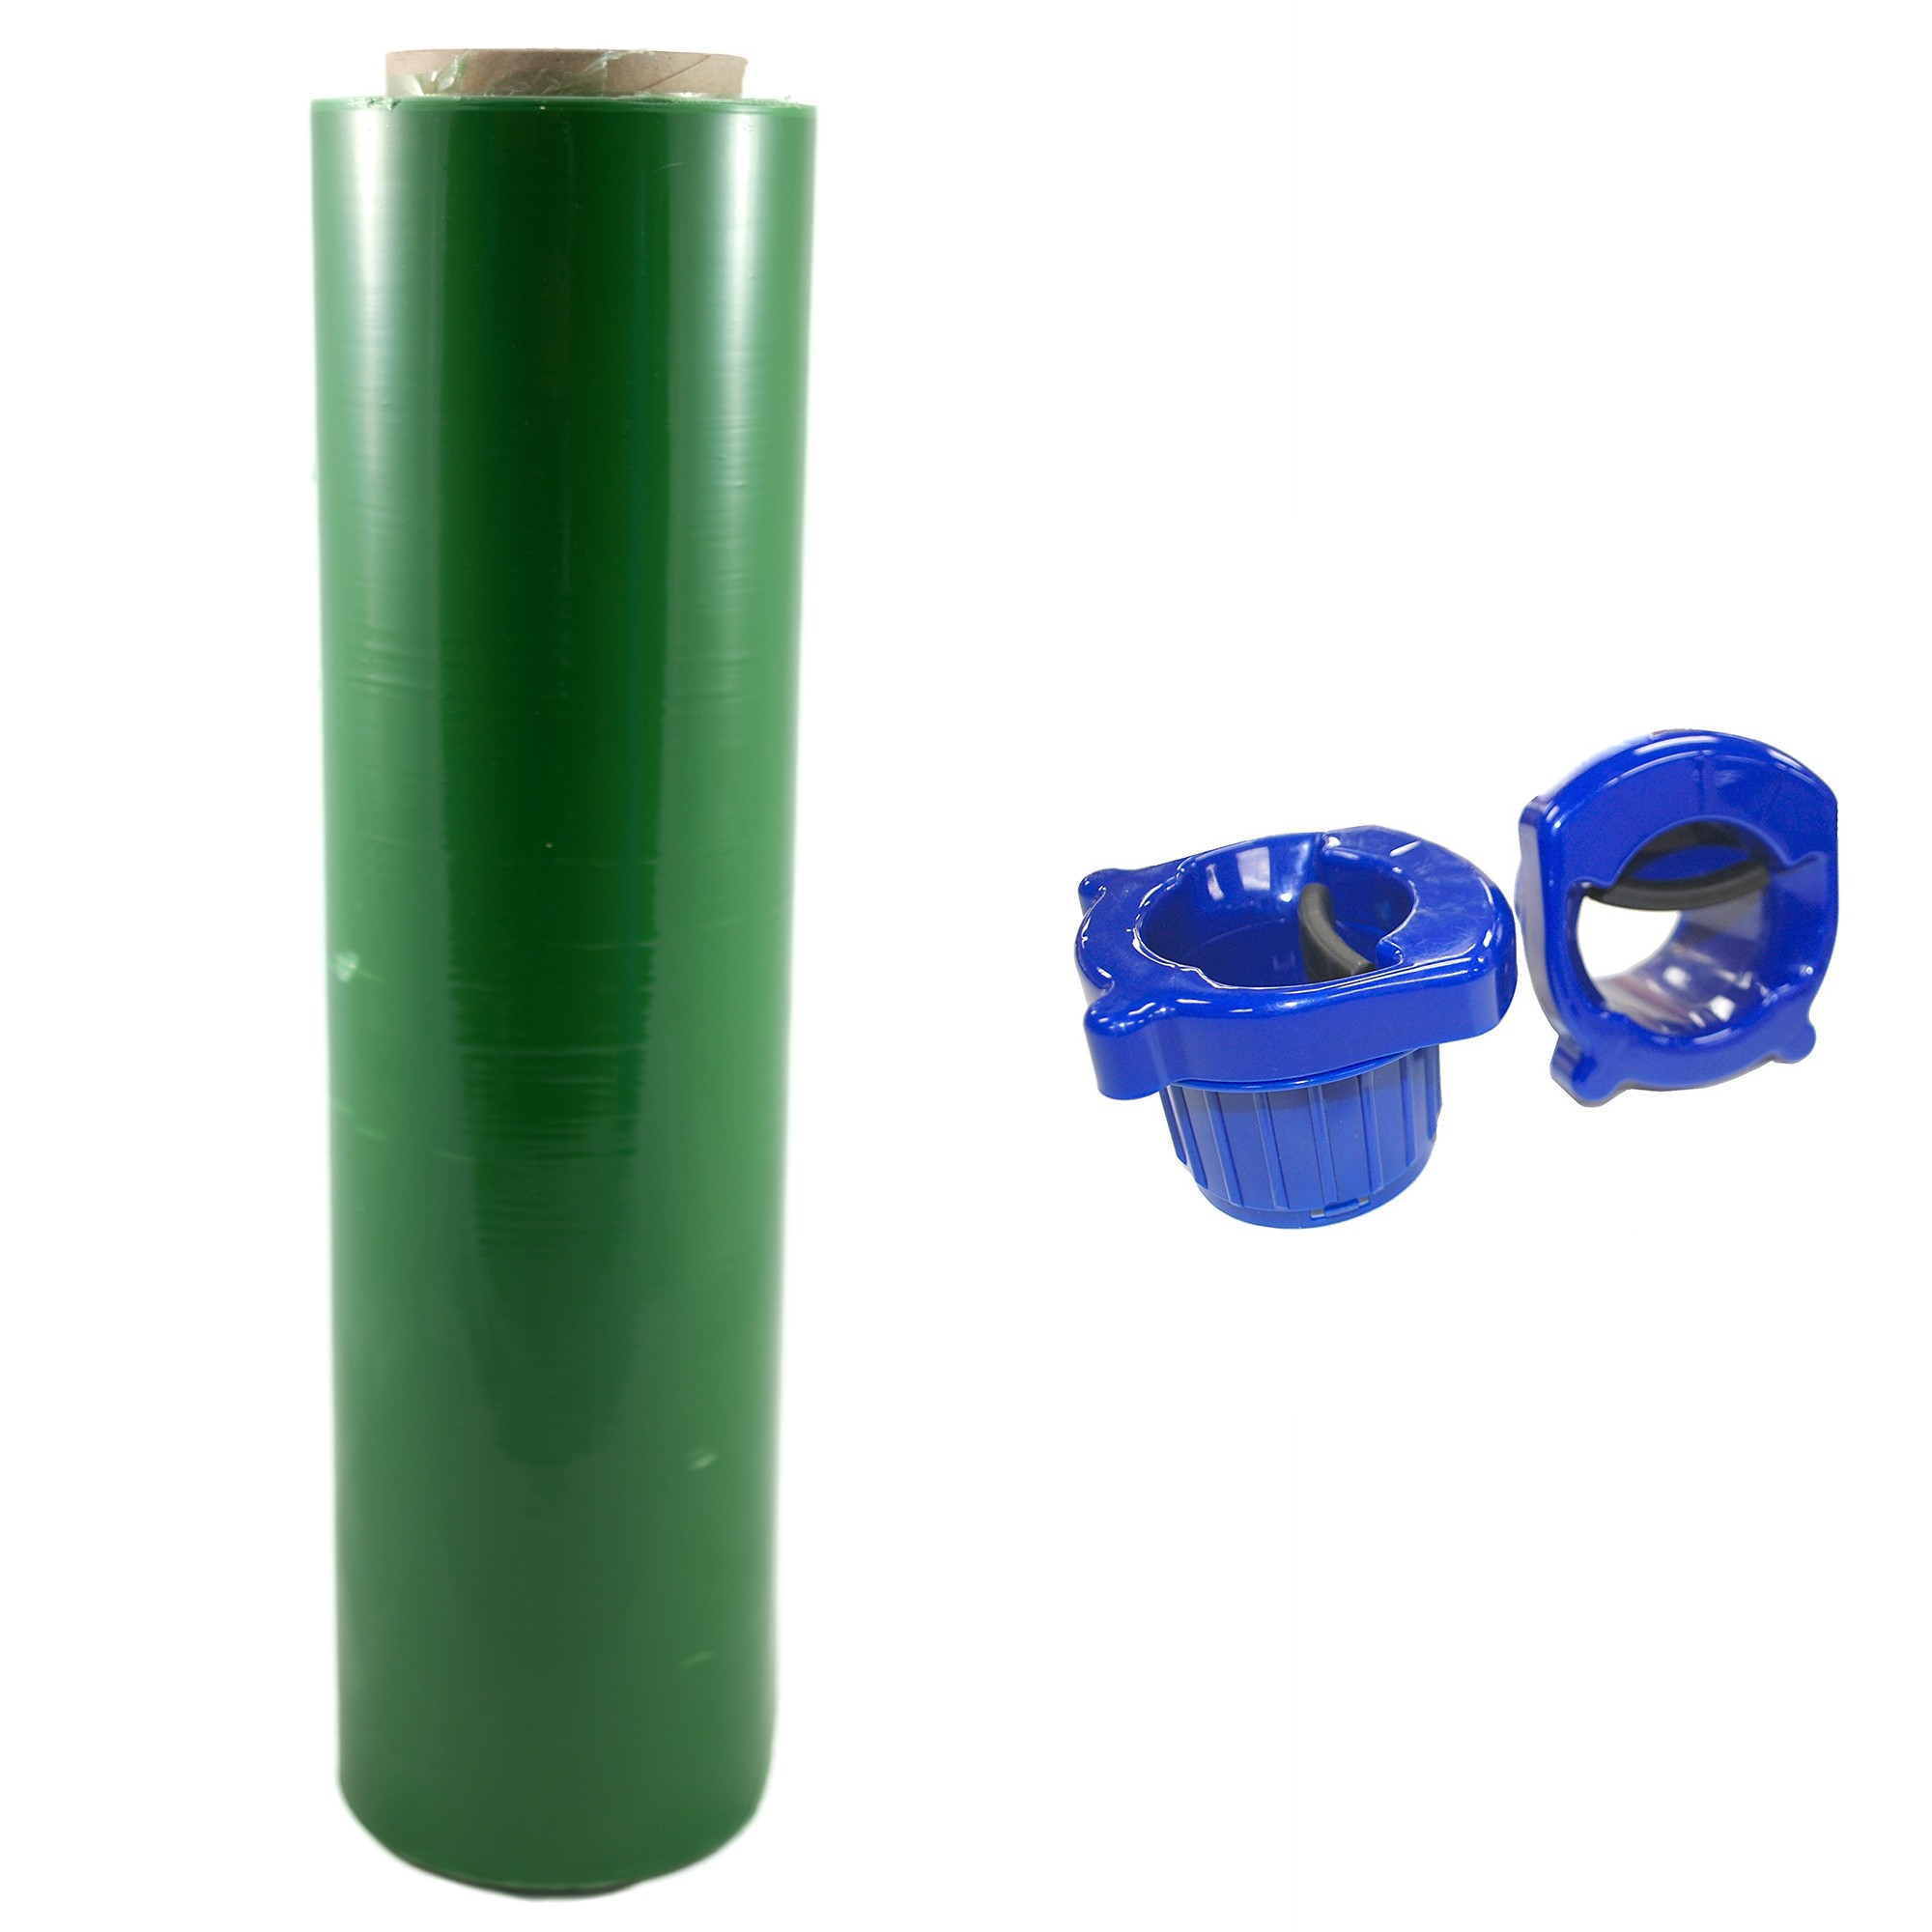 "TOTALPACK® 18"" x 1000' 85 Gauge, 1 Roll. Gauge Blown Stretch Green Film with Regular Duty Dispensers"